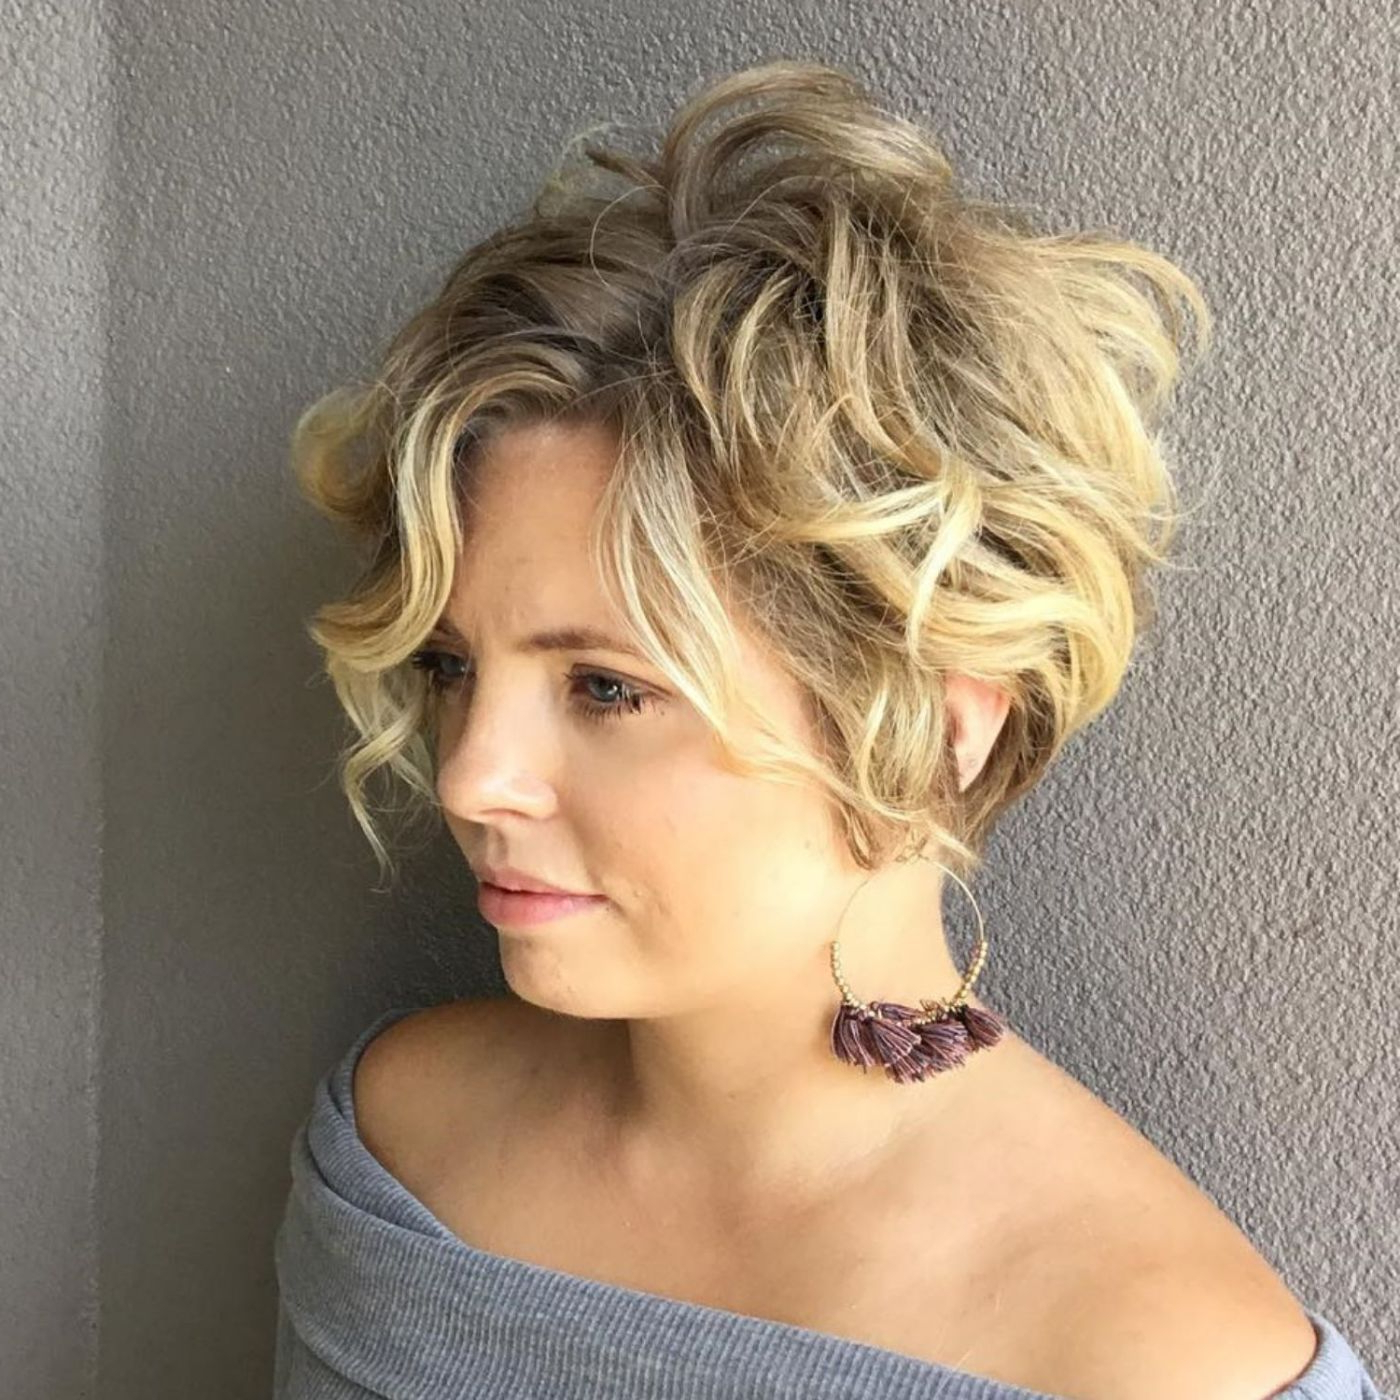 60 Short Shag Hairstyles That You Simply Can't Miss In 2019 Intended For Shaggy Blonde Bob Hairstyles With Bangs (View 9 of 20)